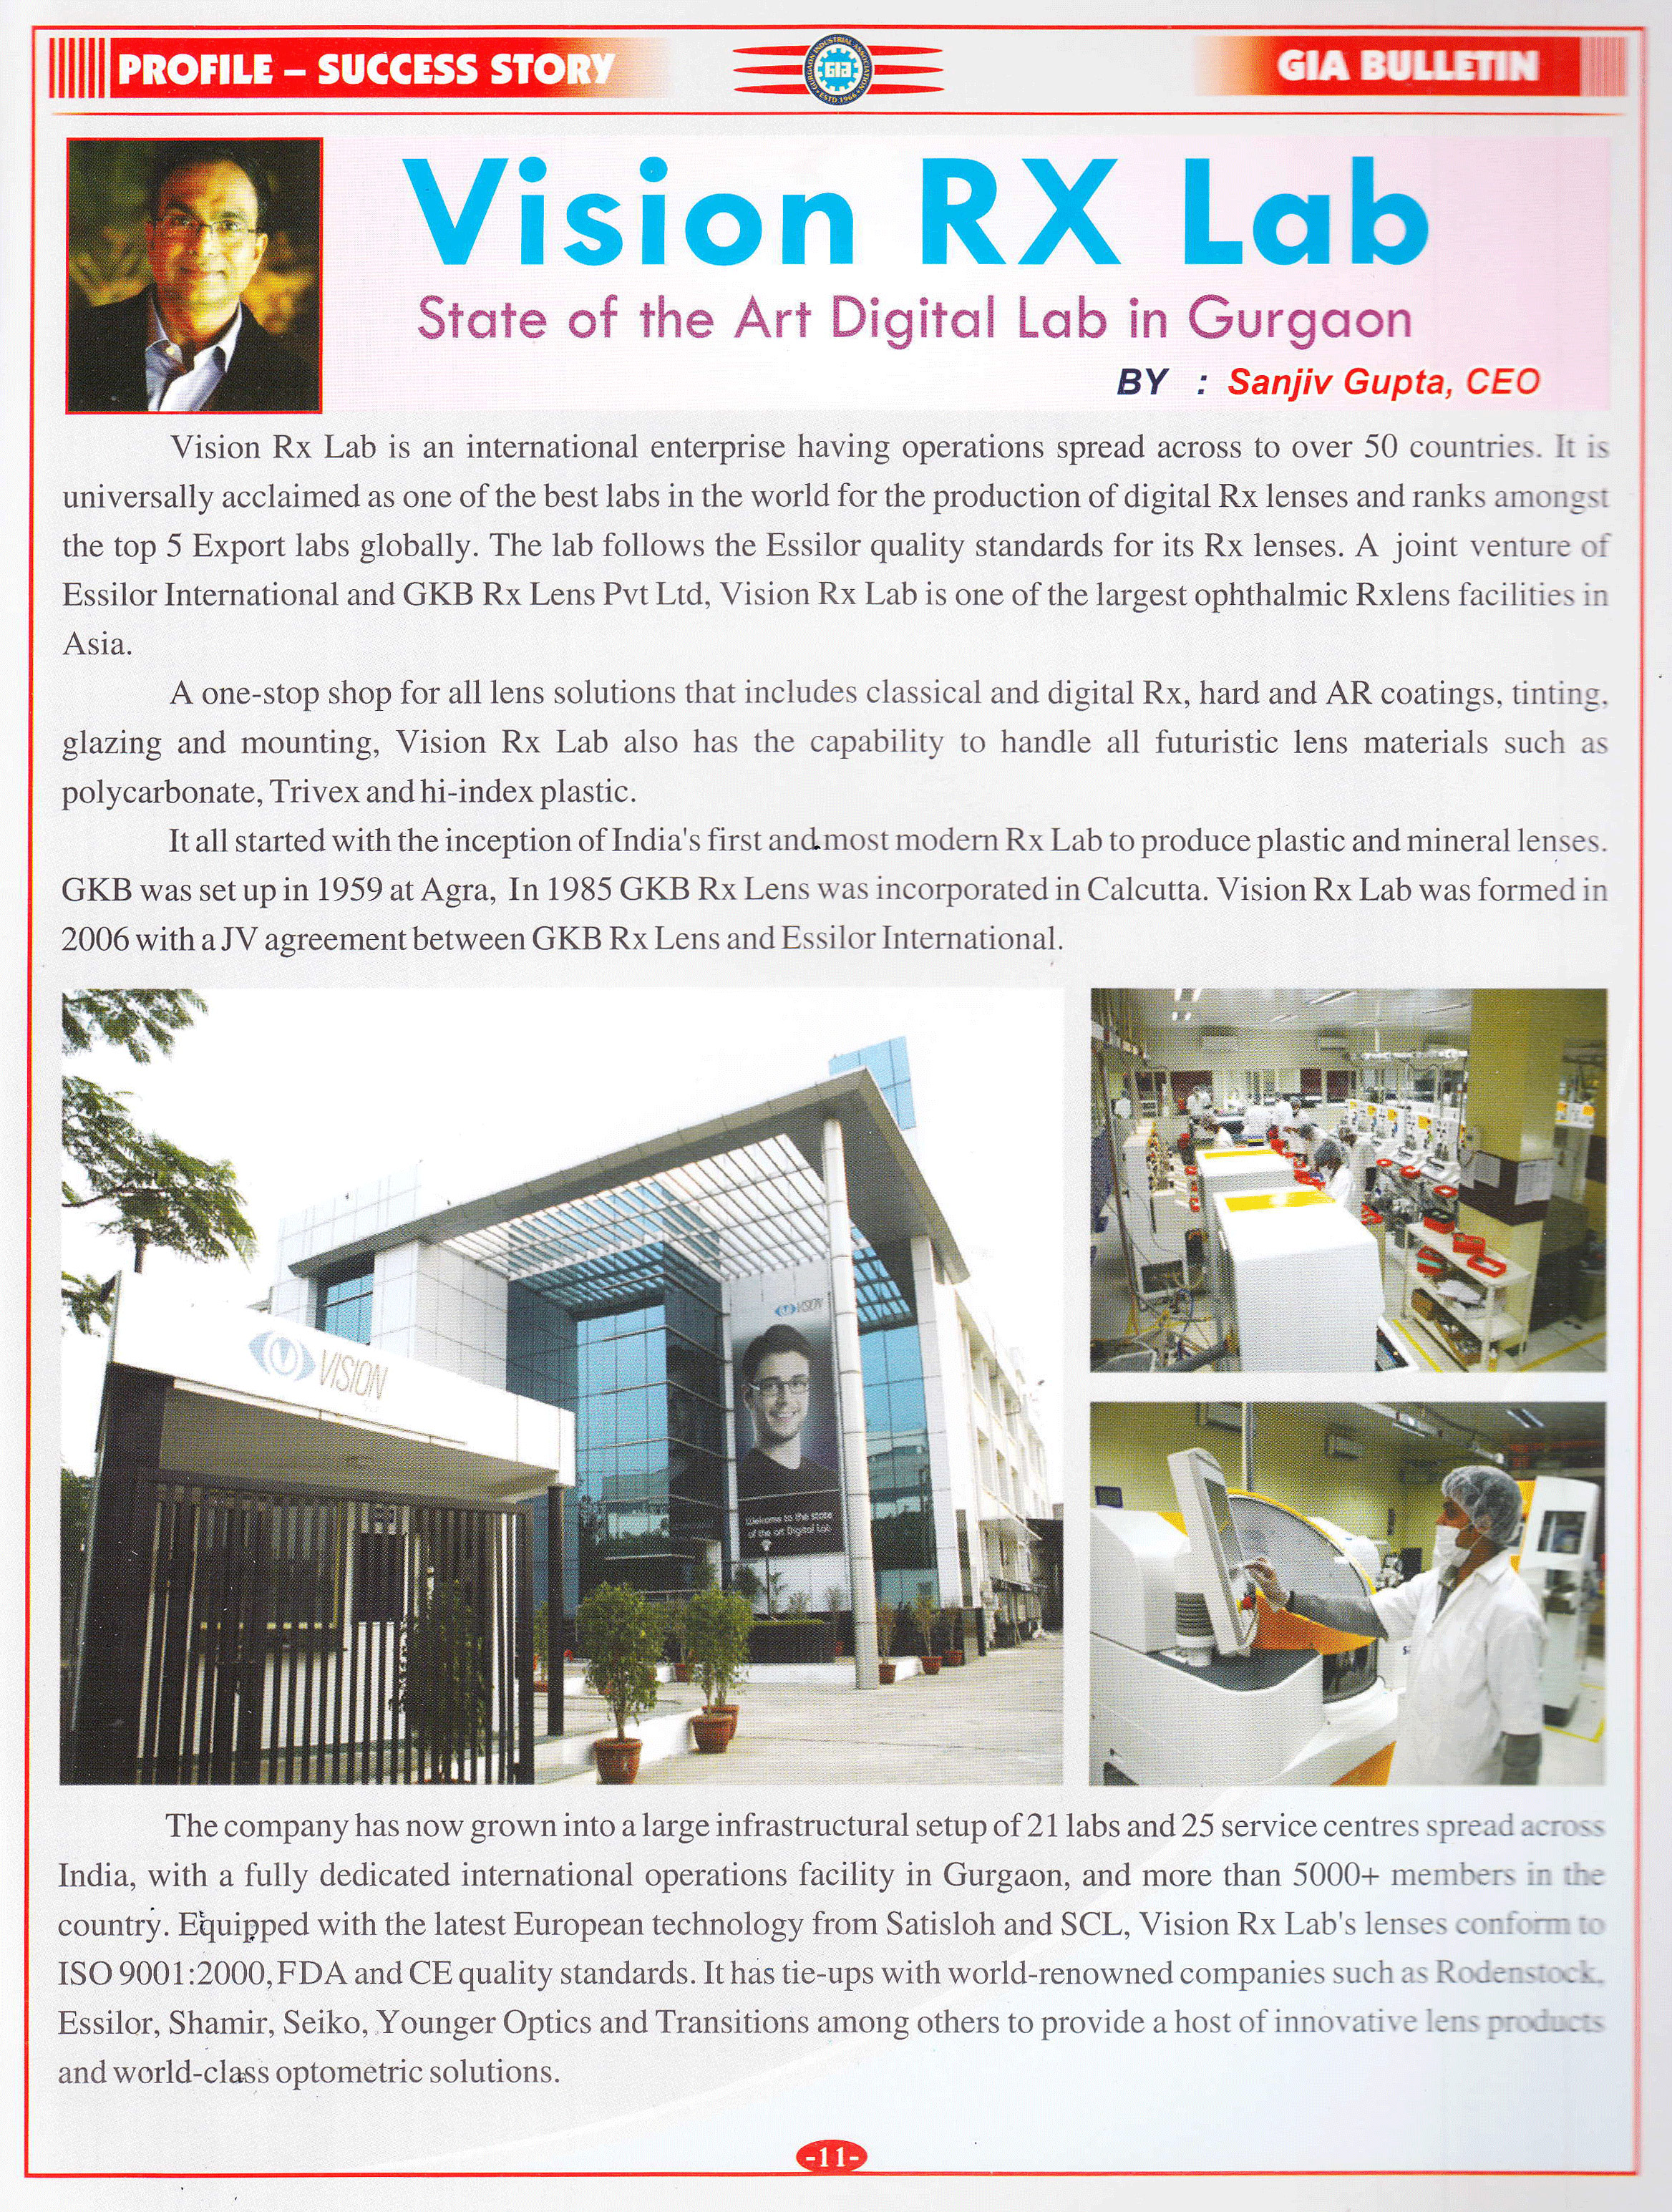 Vision Rx Lab- State of the Art Digital Lab in Gurgaon